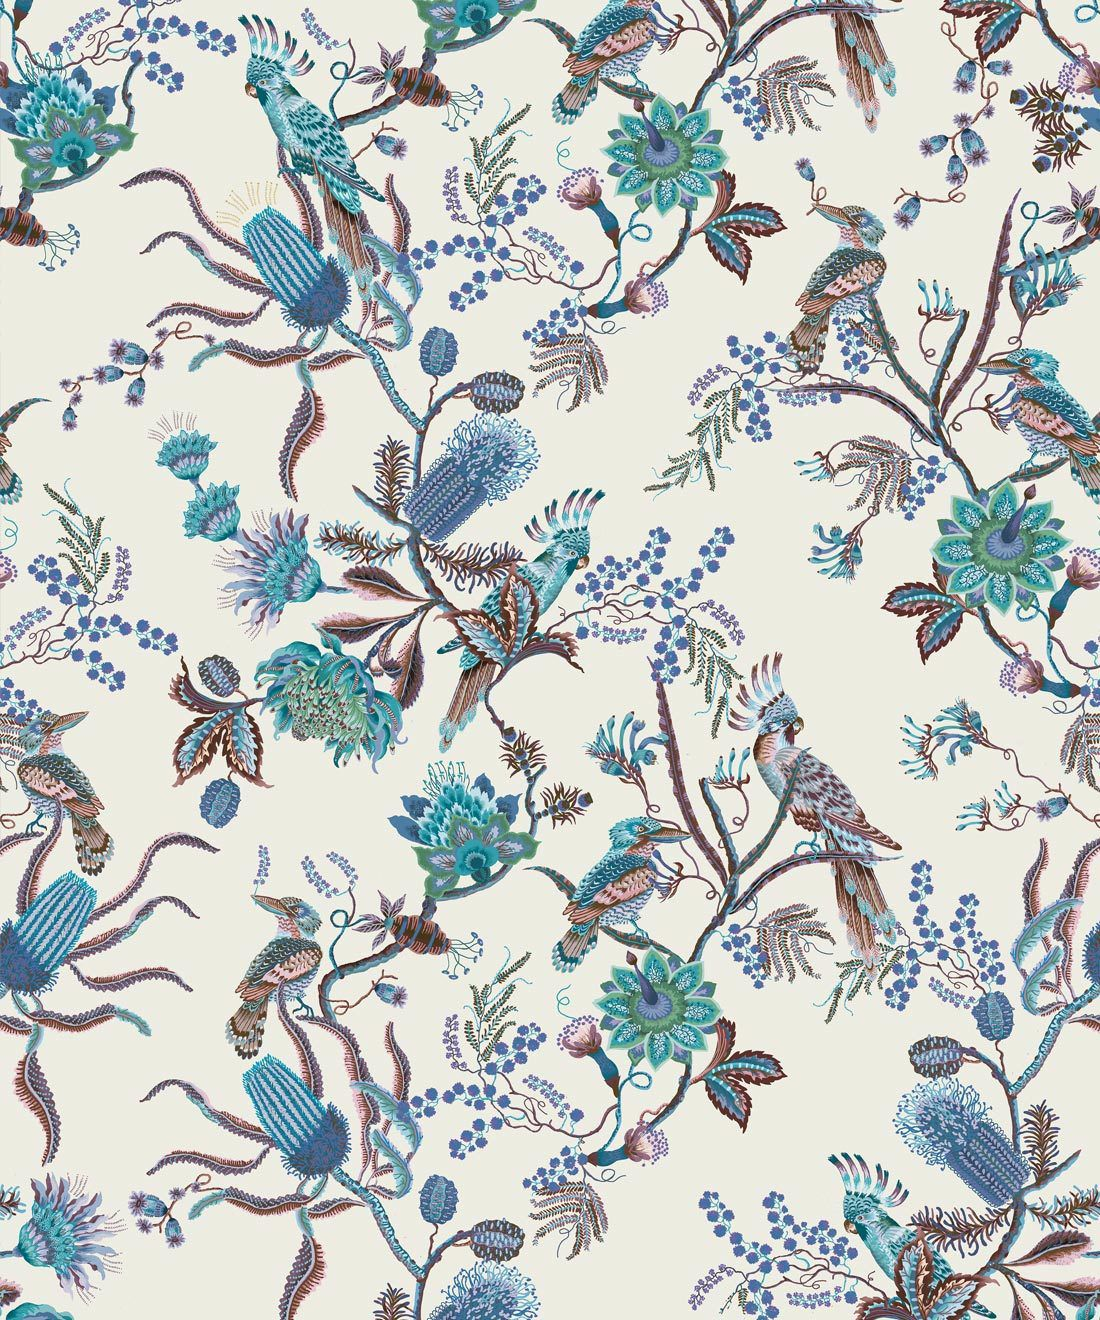 Matilda Wallpaper • Cockatoo, kookaburra • Australian Wallpaper • Milton & King USA • Blue Bell Swatch